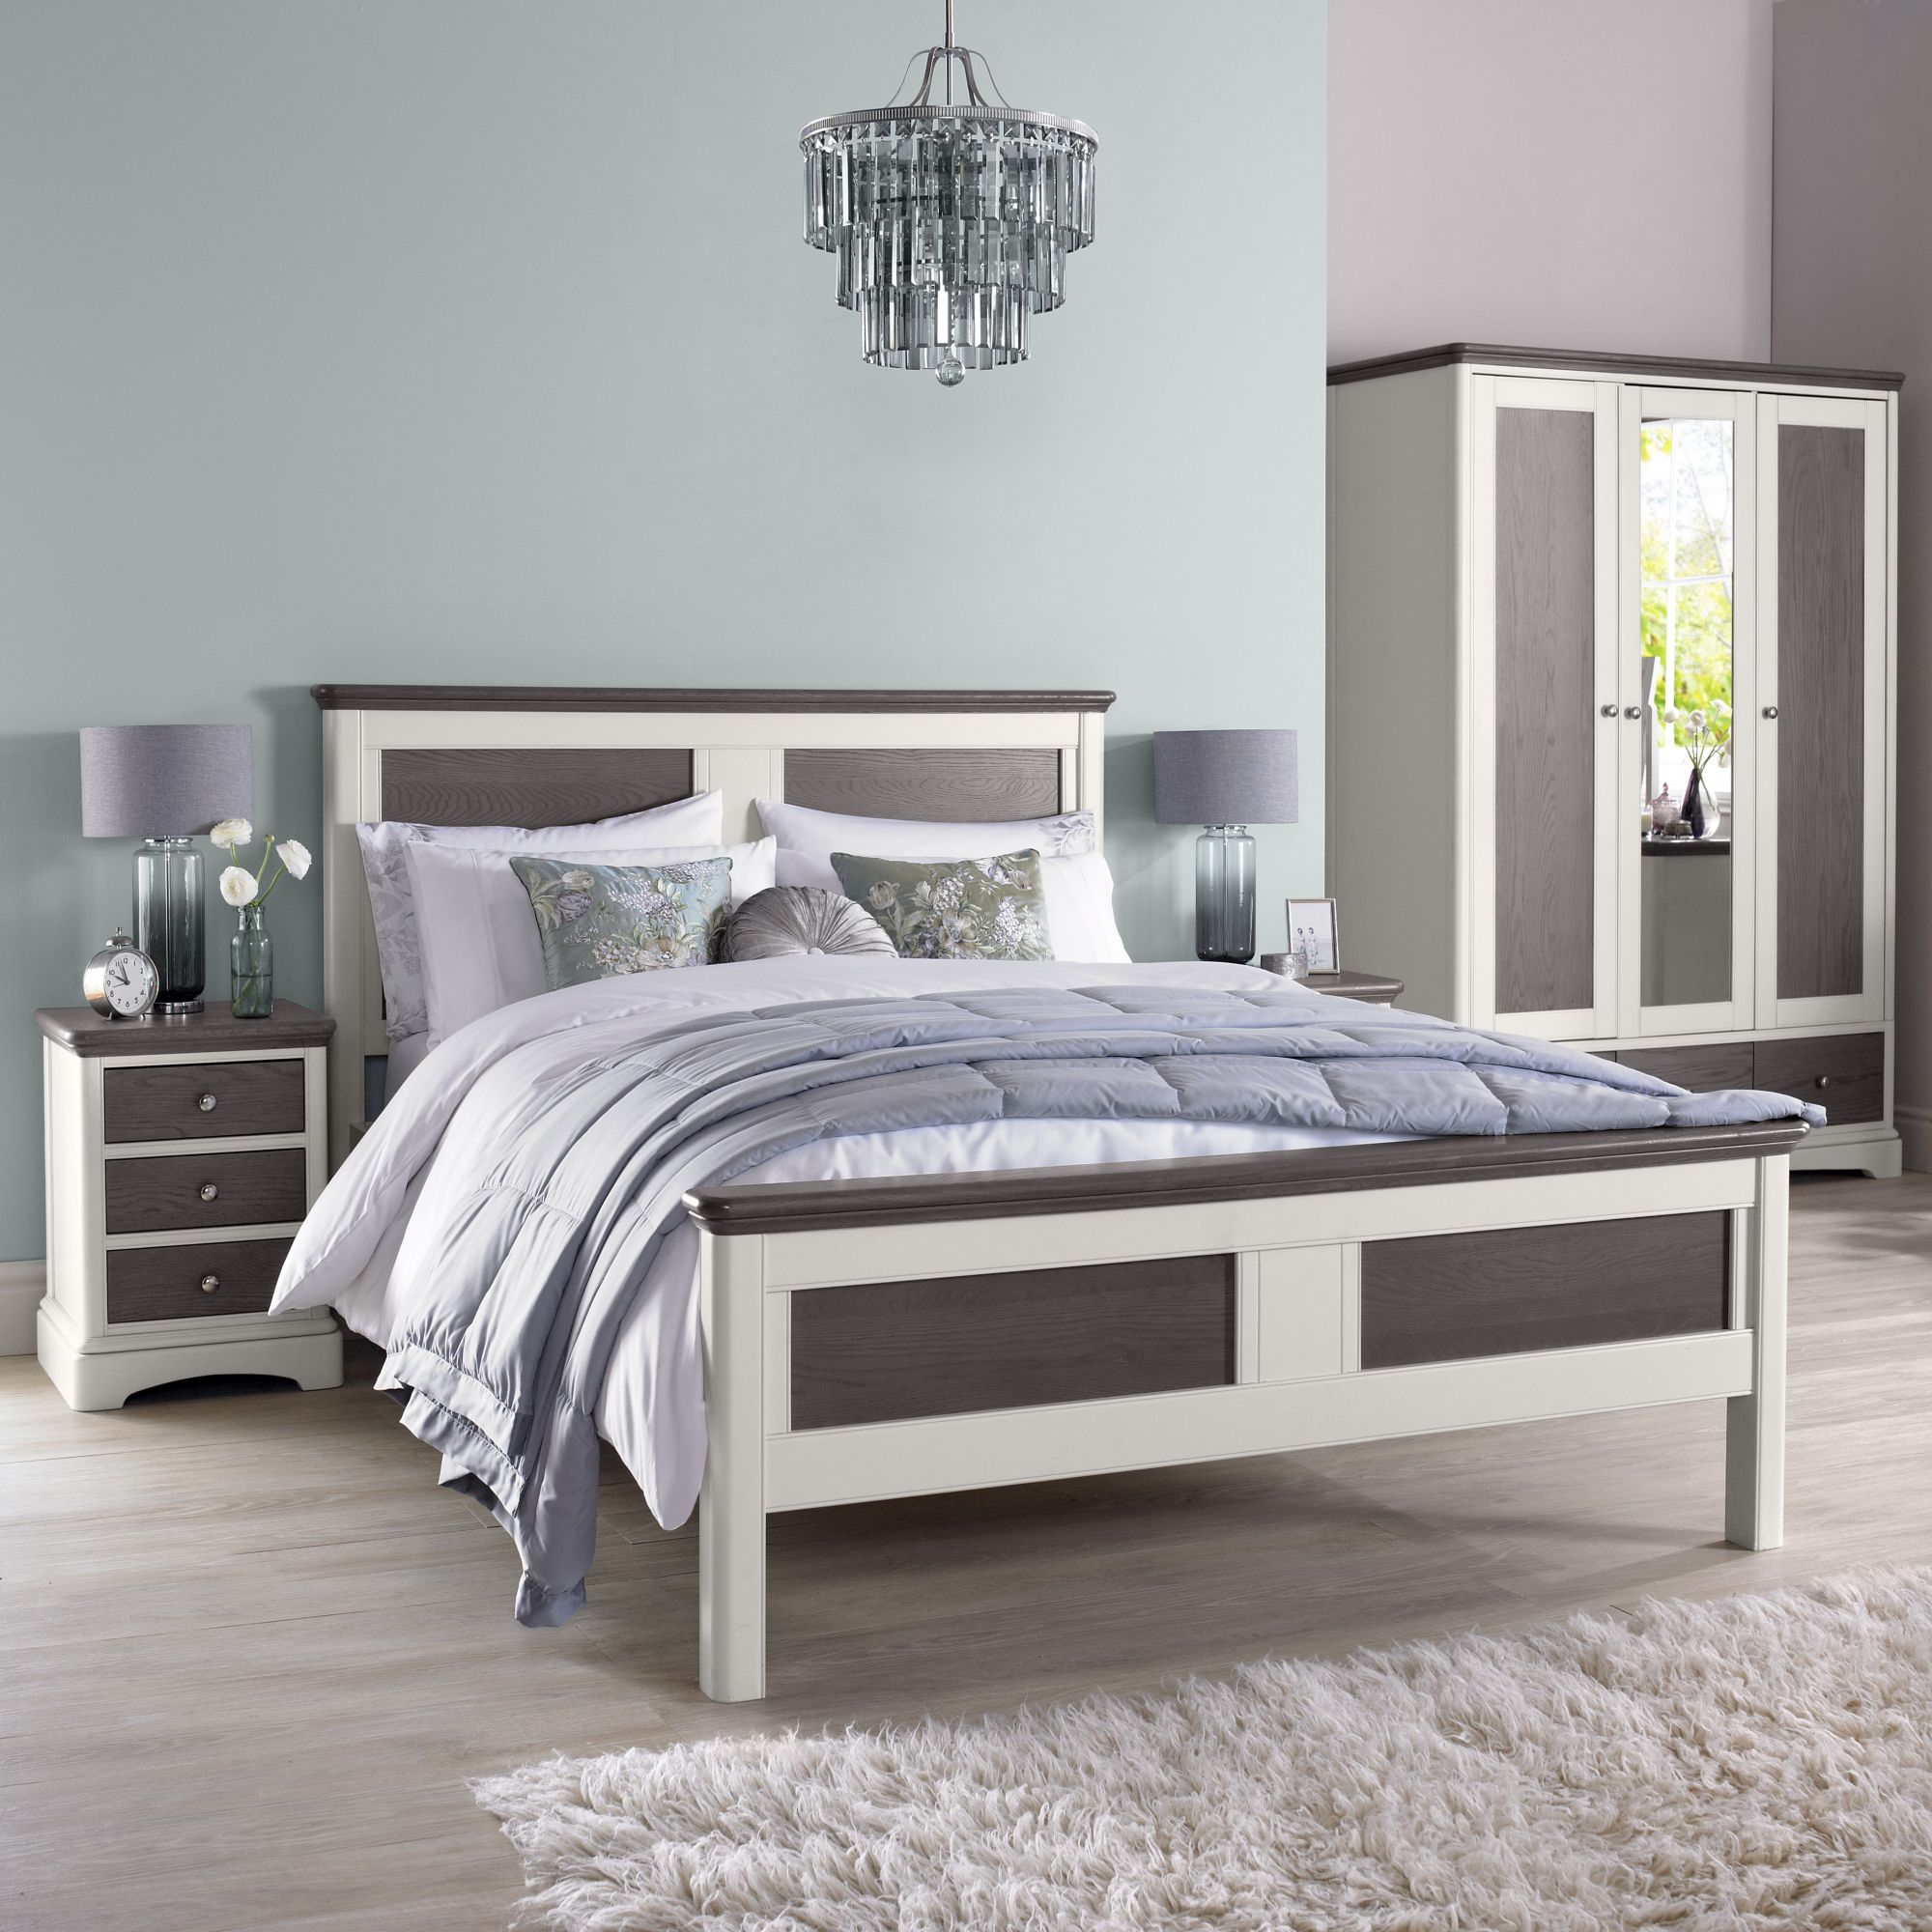 Bedroom Furniture Furniture Store In Leicester World Of Furniture - Weathered oak bedroom furniture